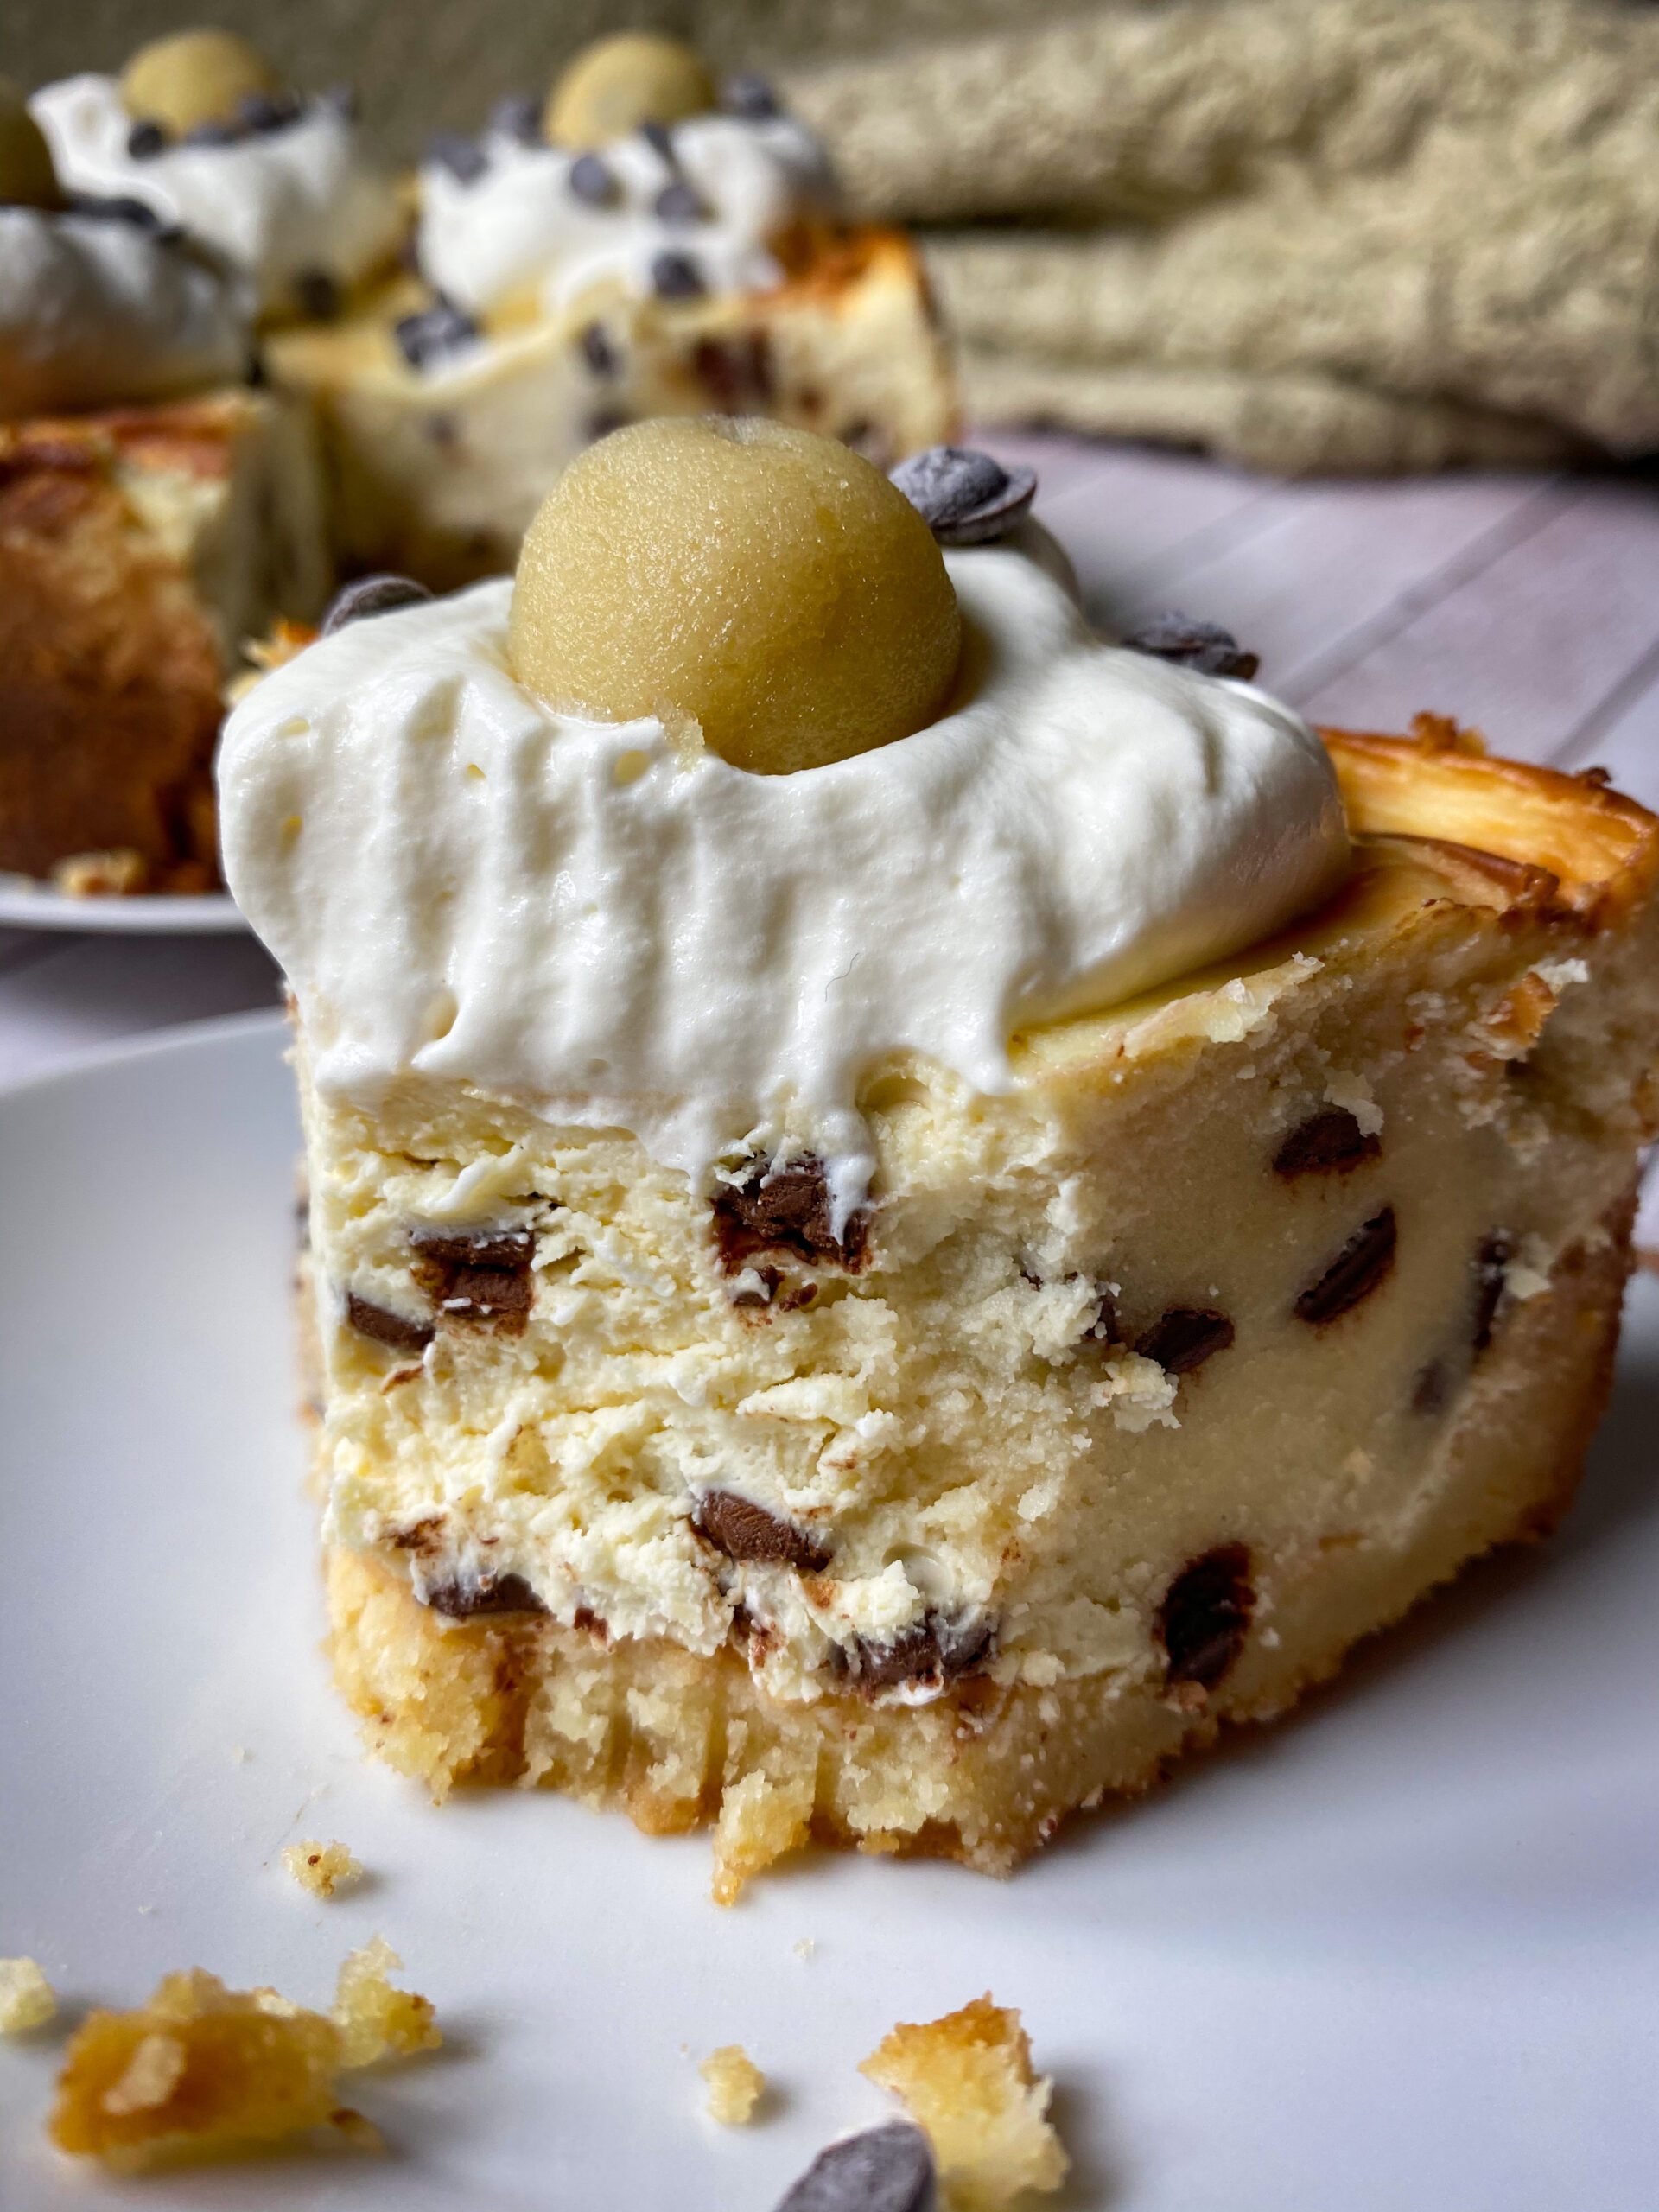 Picture of a slice of keto cheesecake with edible keto cookie dough